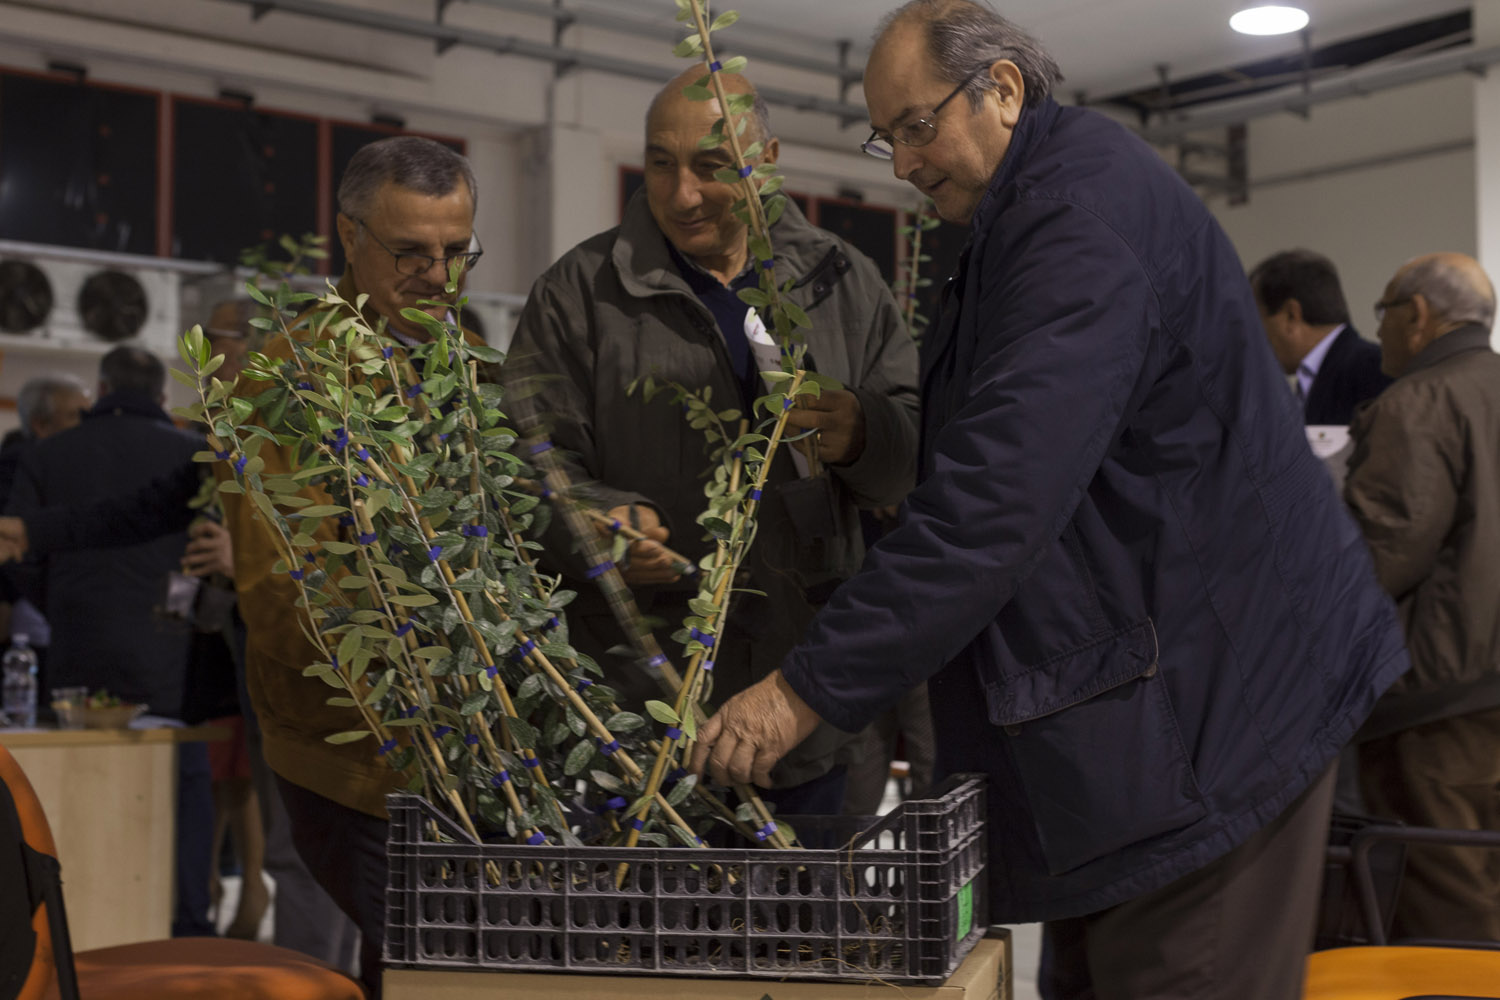 """Farmers pick up free olive saplings at the end of a promotional event for the FS-17 """"Favolosa"""" variety at an agricultural cooperative near Racale, in the area of salento where the outbreak began. Originally designed for super-intensive groves, this patented variety shows some tolerance to Xylella fastidiosa, although doubts remain on its water requirements, especially in a region where water is increasingly scarce. (2019)"""